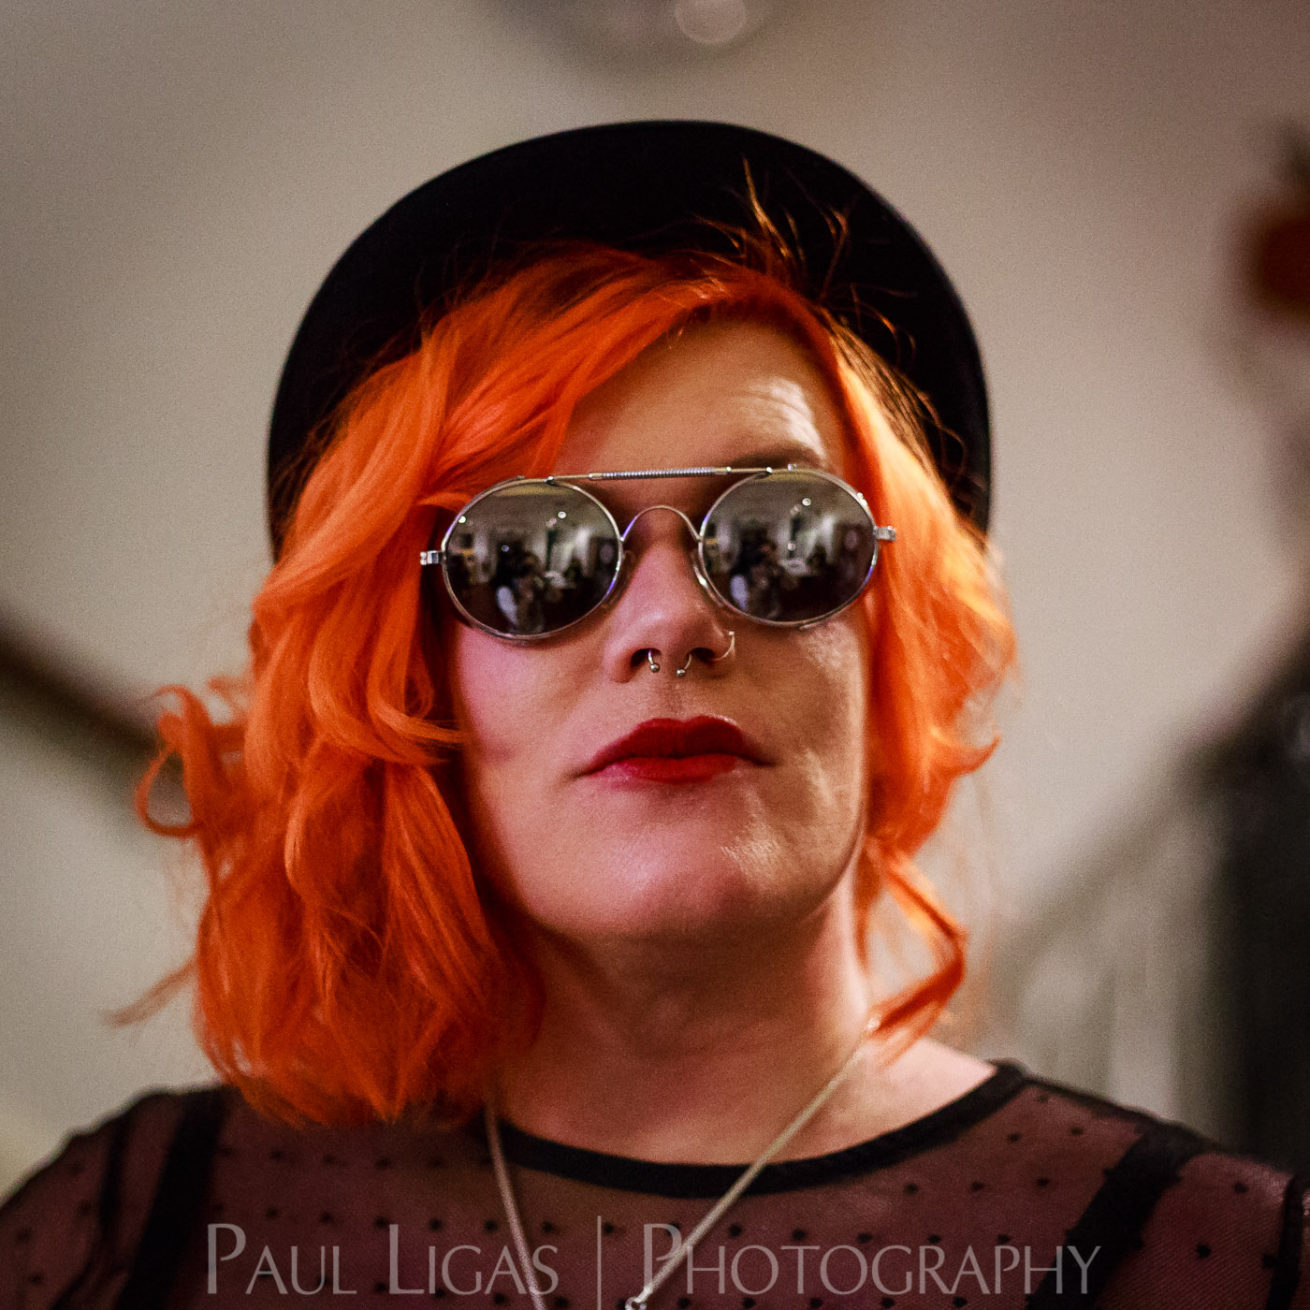 Steampunk Yule Ball 2017, event photographer music concert portrait herefordshire 9395